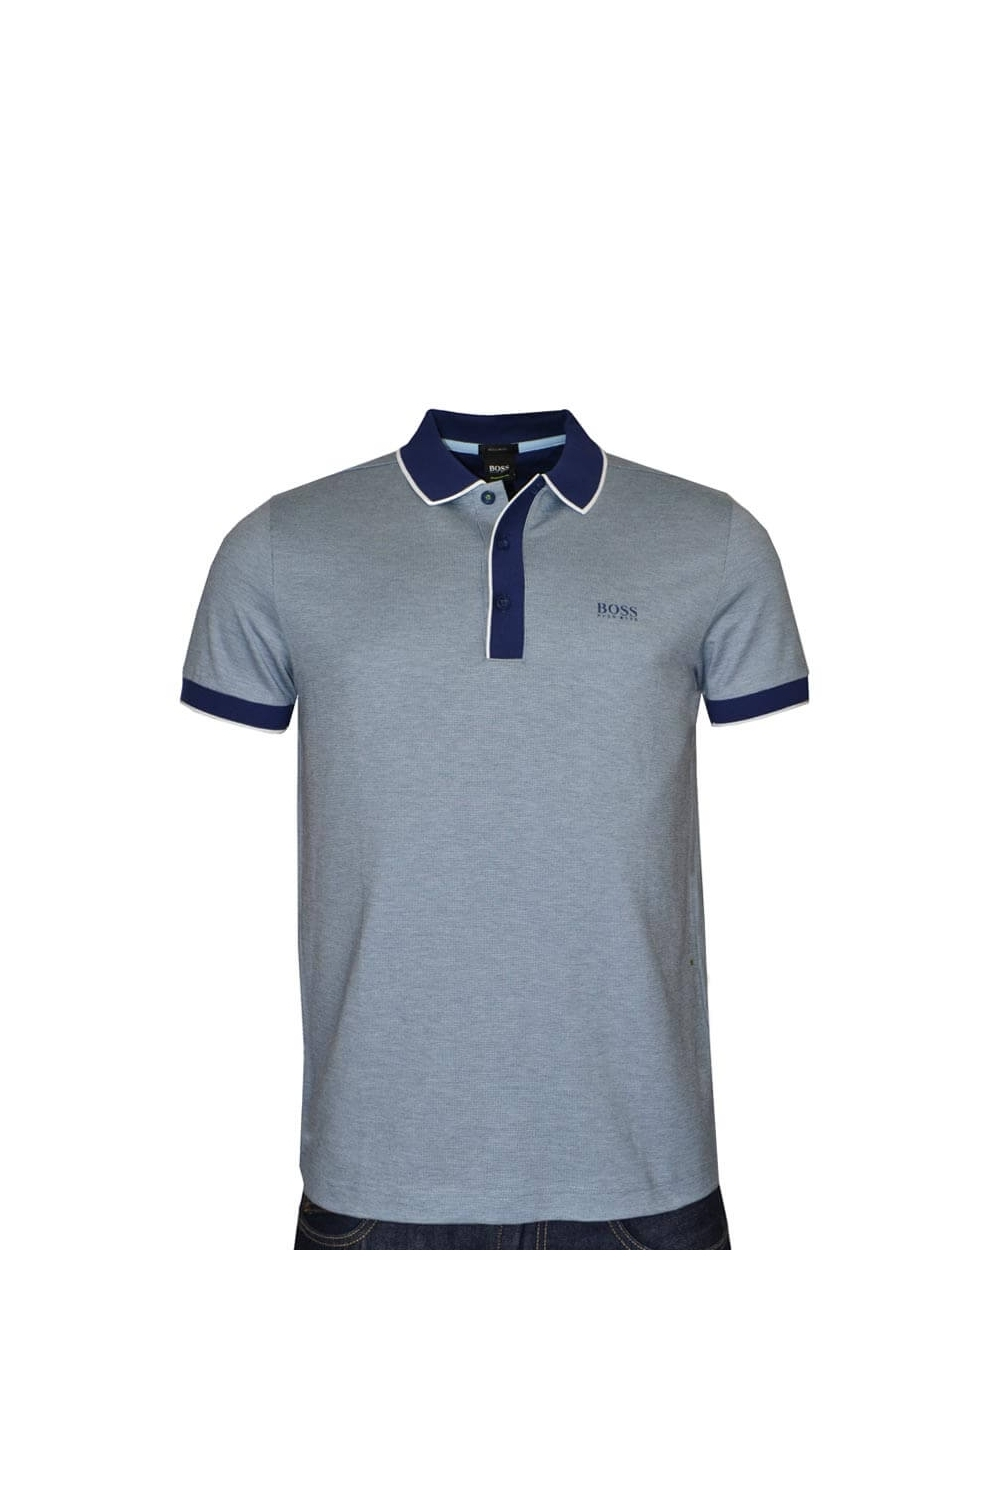 89f4a32c Hugo Boss Green Paddy Polo 5 in Blue 50392665 404